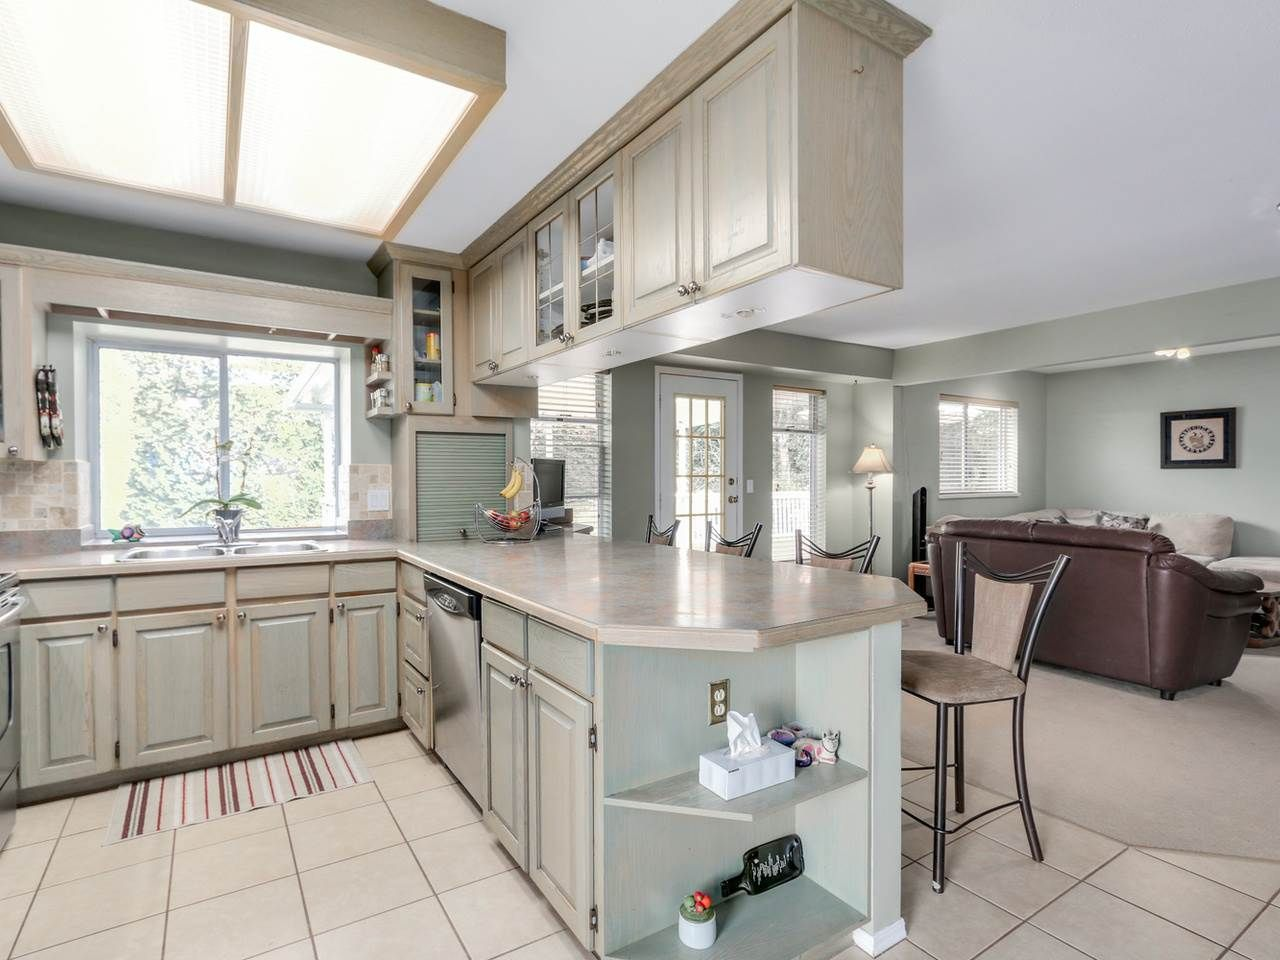 """Photo 3: Photos: 2559 BLUEBELL Avenue in Coquitlam: Summitt View House for sale in """"SUMMITT VIEW"""" : MLS®# R2064204"""